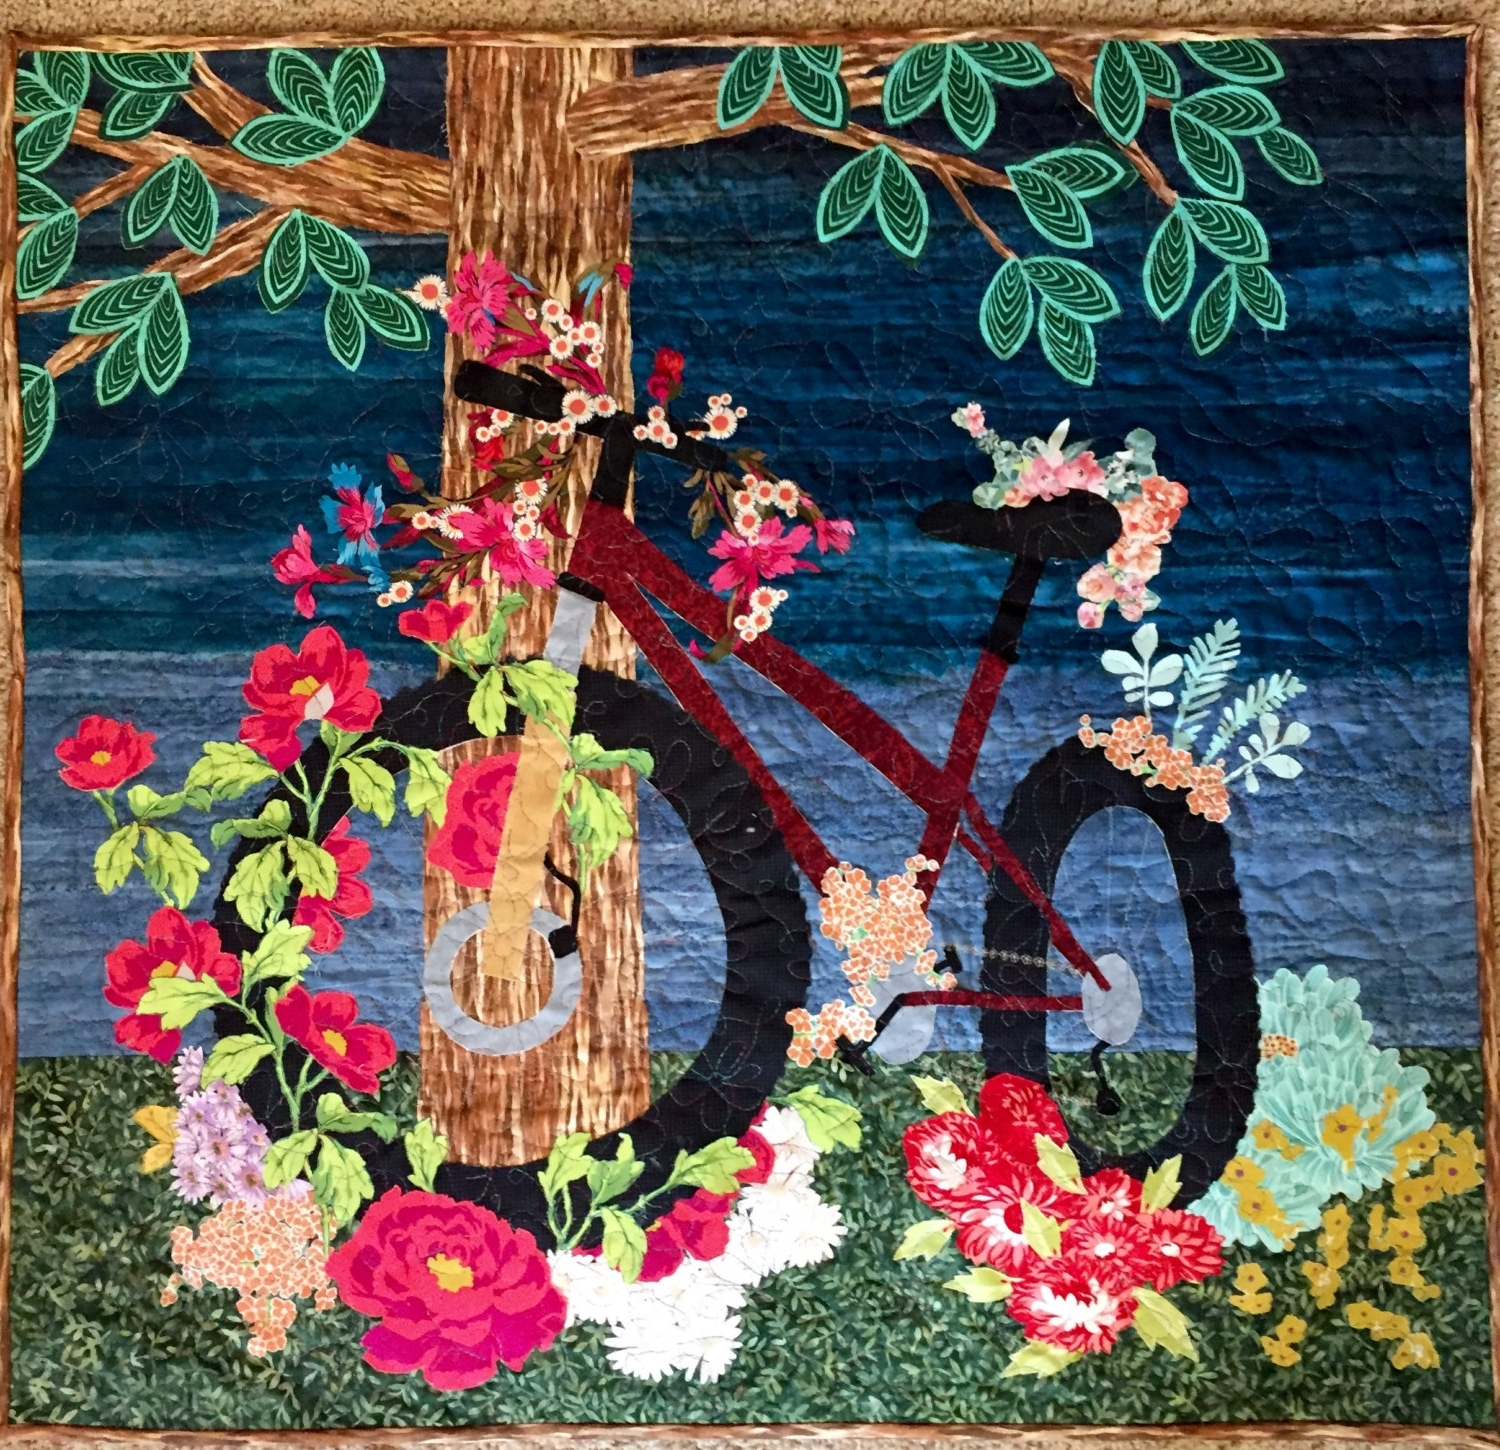 Bike Art Intended For Fabric Wall Art Patterns (View 2 of 15)